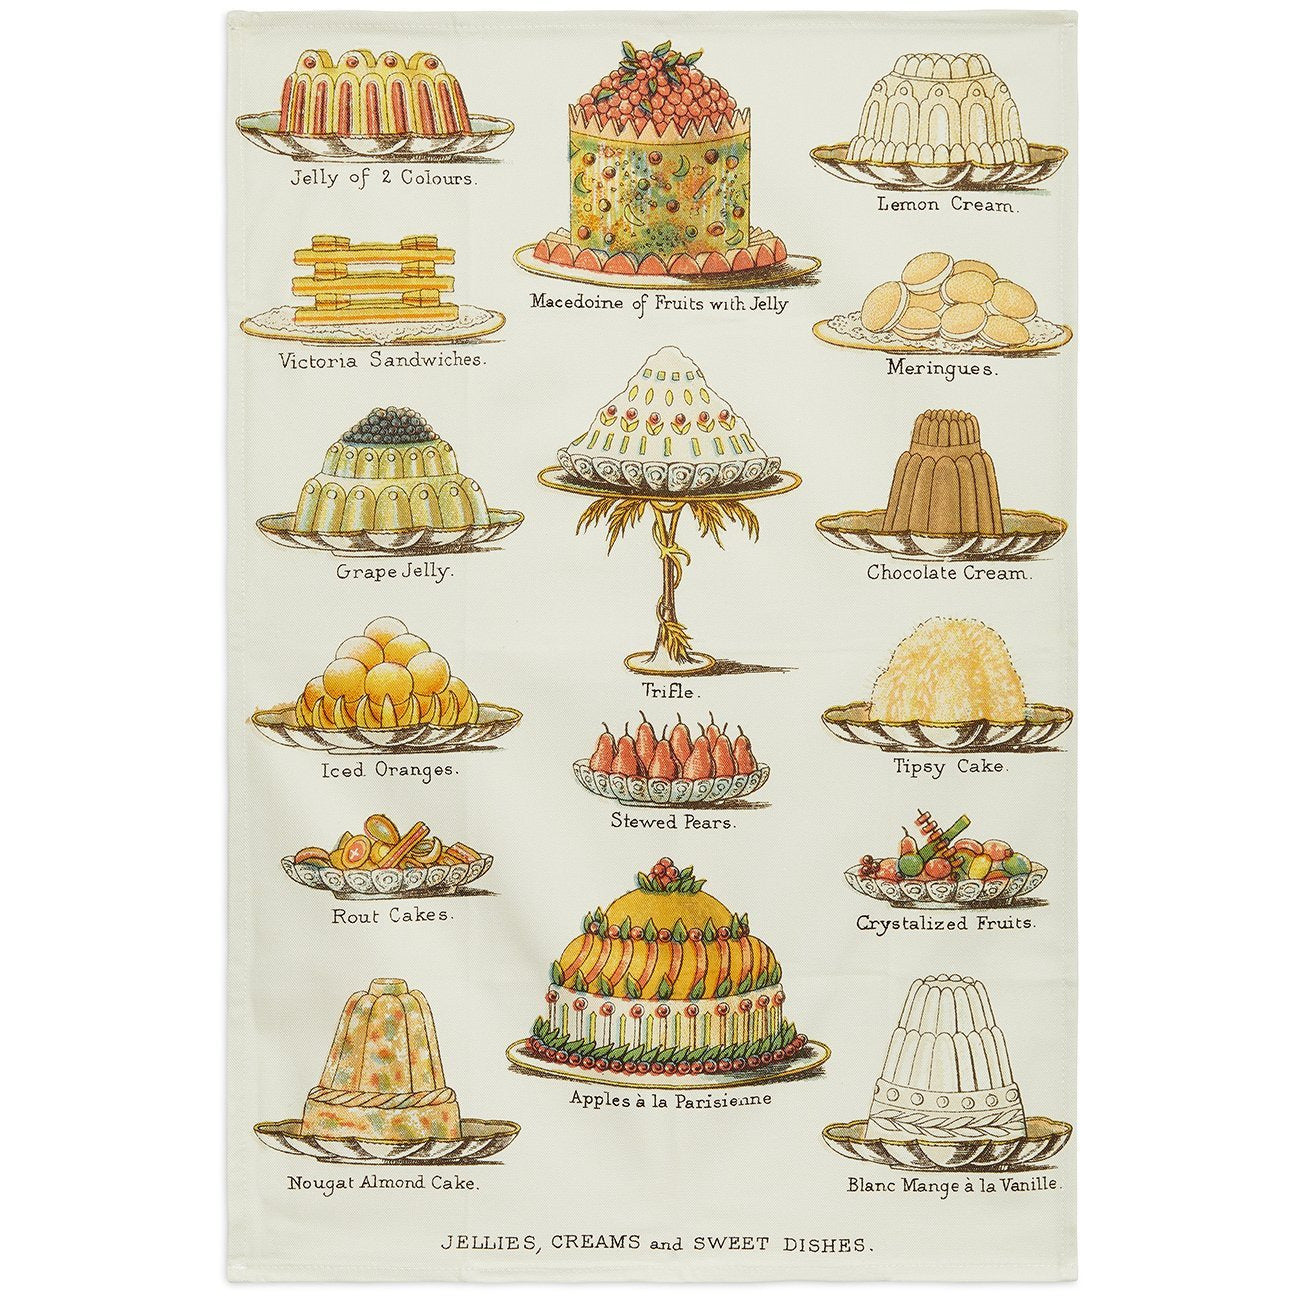 Featured image for the project: Mrs Beeton's Book of Household Management - desserts tea towel